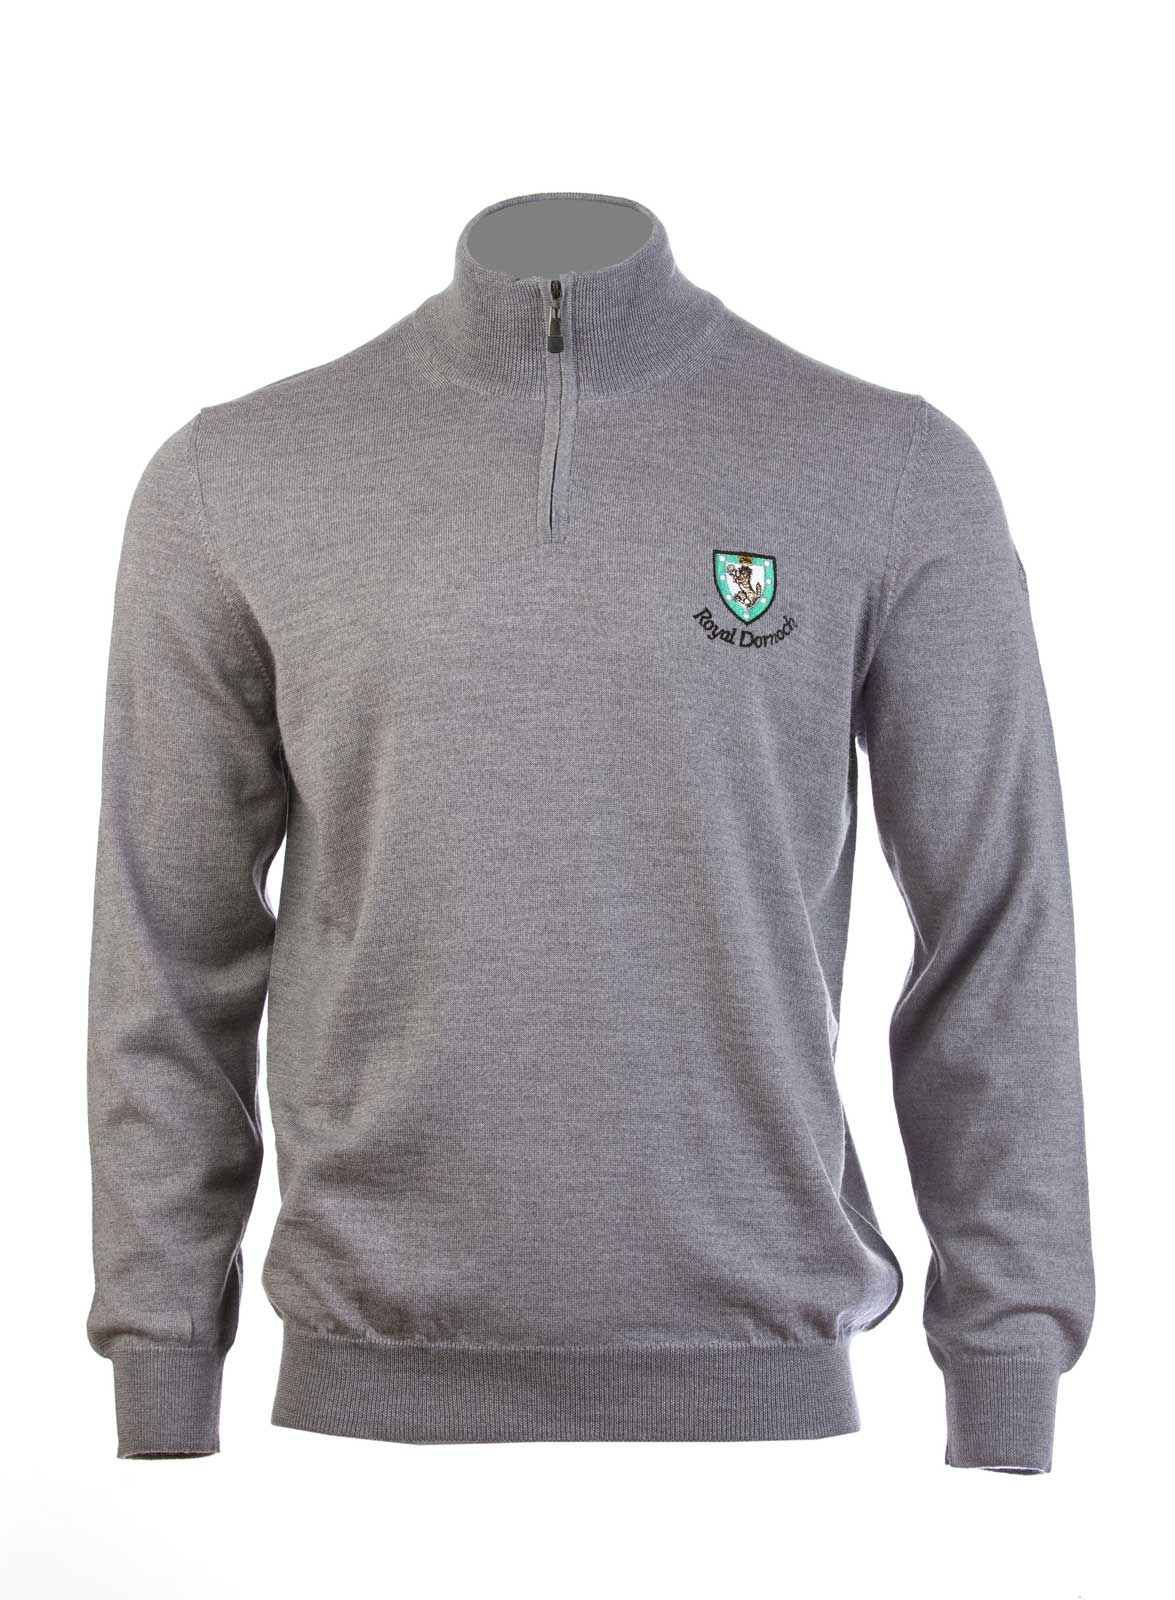 Truck Bed Size Chart >> Lyle & Scott 100% Merino Wool Zip Neck Sweater - Royal ...